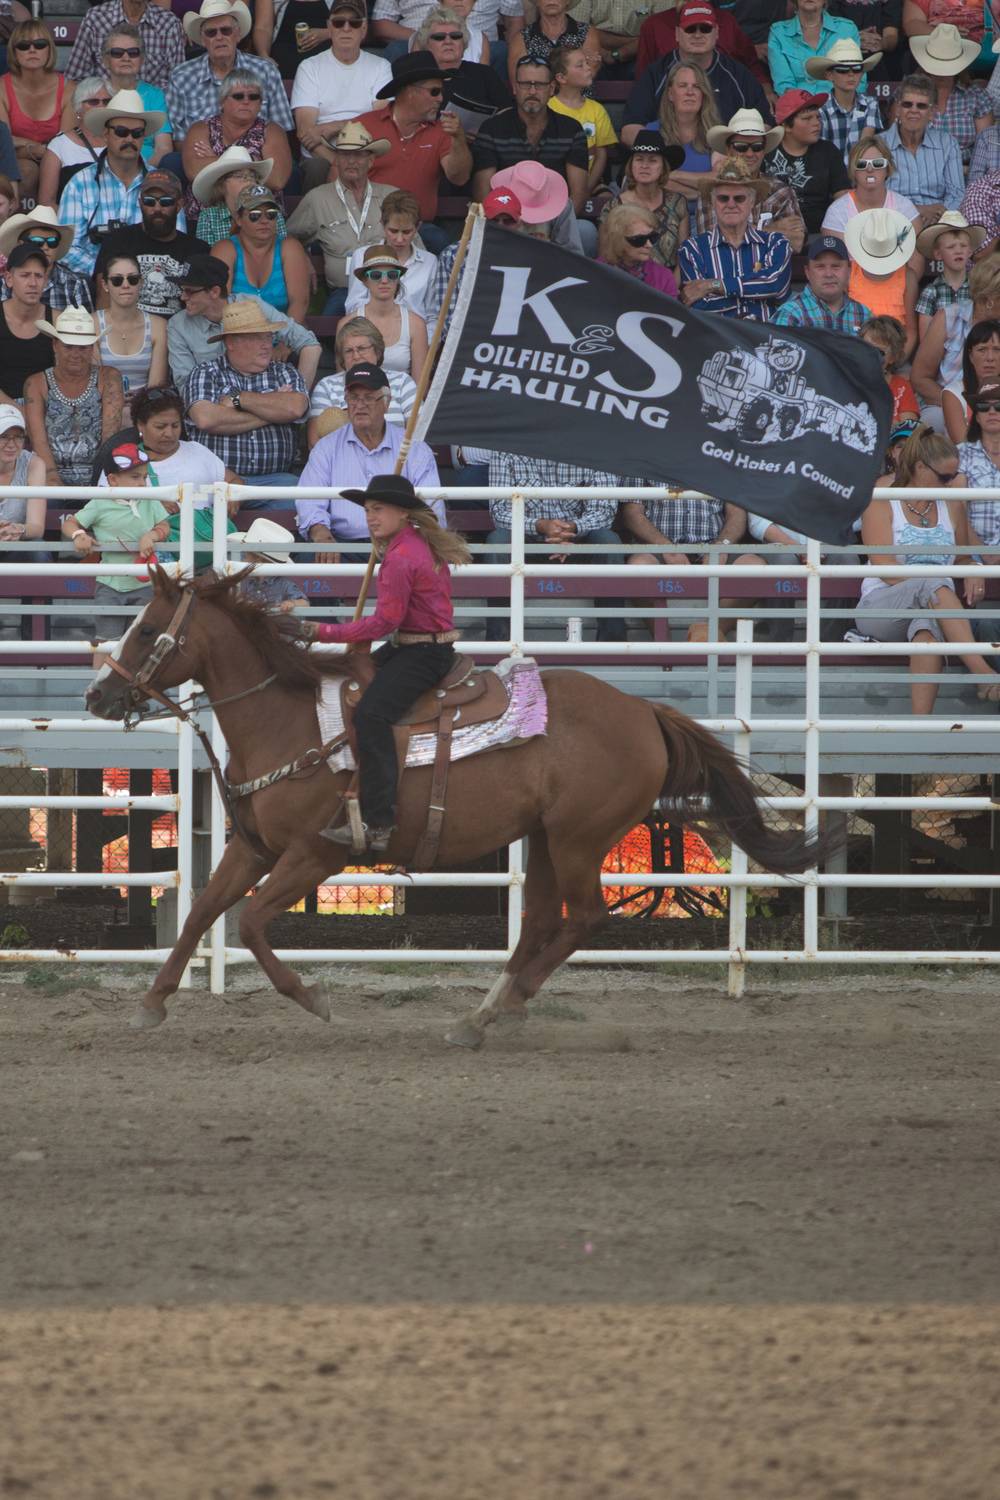 Thank you to  K & S Oilfield Hauling  for supporting the 2015 Strathmore Stampede.